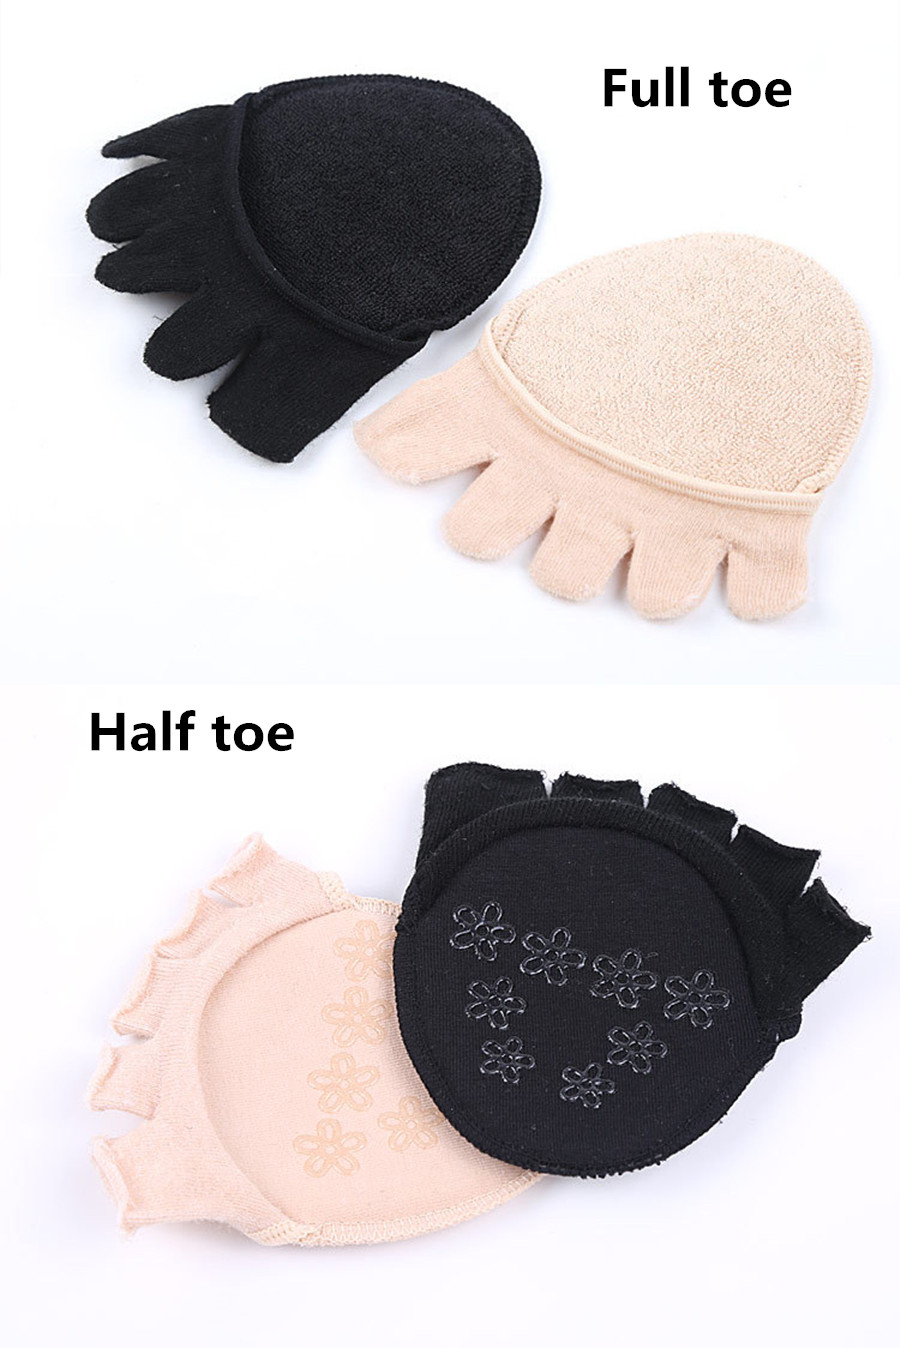 US $3.06 10% OFF|Nylon High Heel Shoes Anti Skid Forefoot Socks Silicone Forefoot Insoles Separate Toes Care Foot Half Shoes Pad Dropshipping in